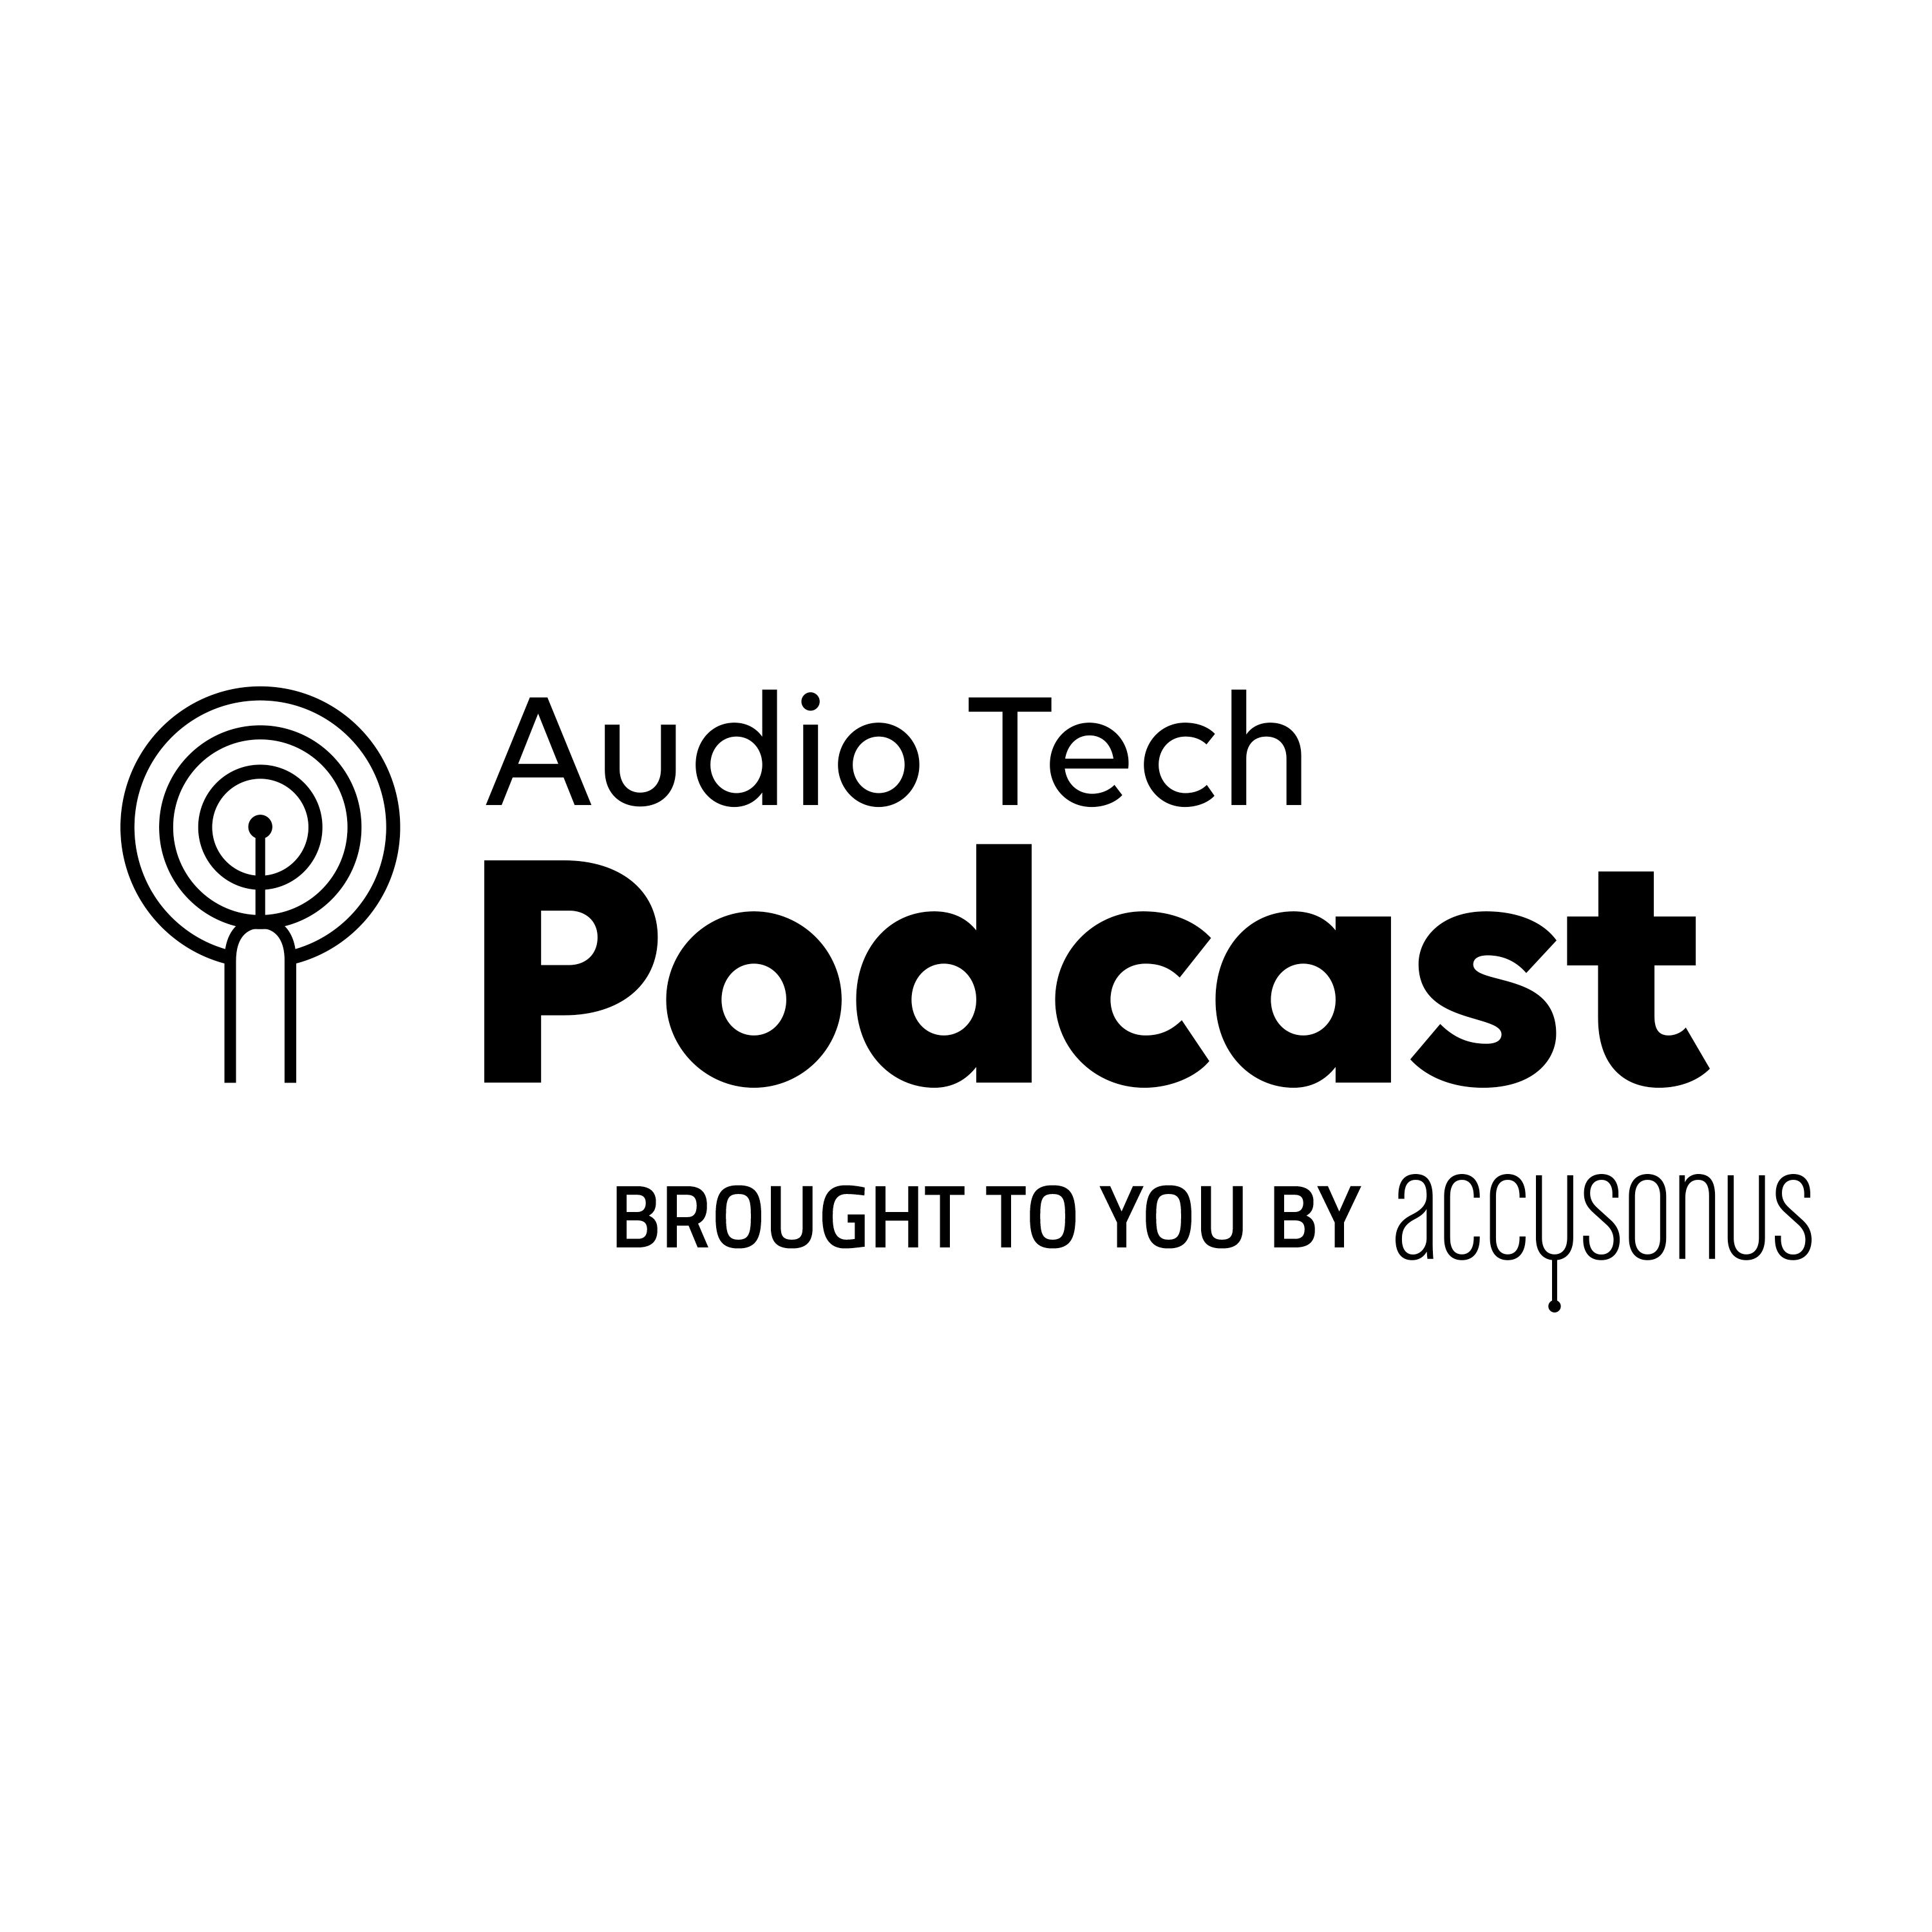 Audio Tech Podcast on Apple Podcasts